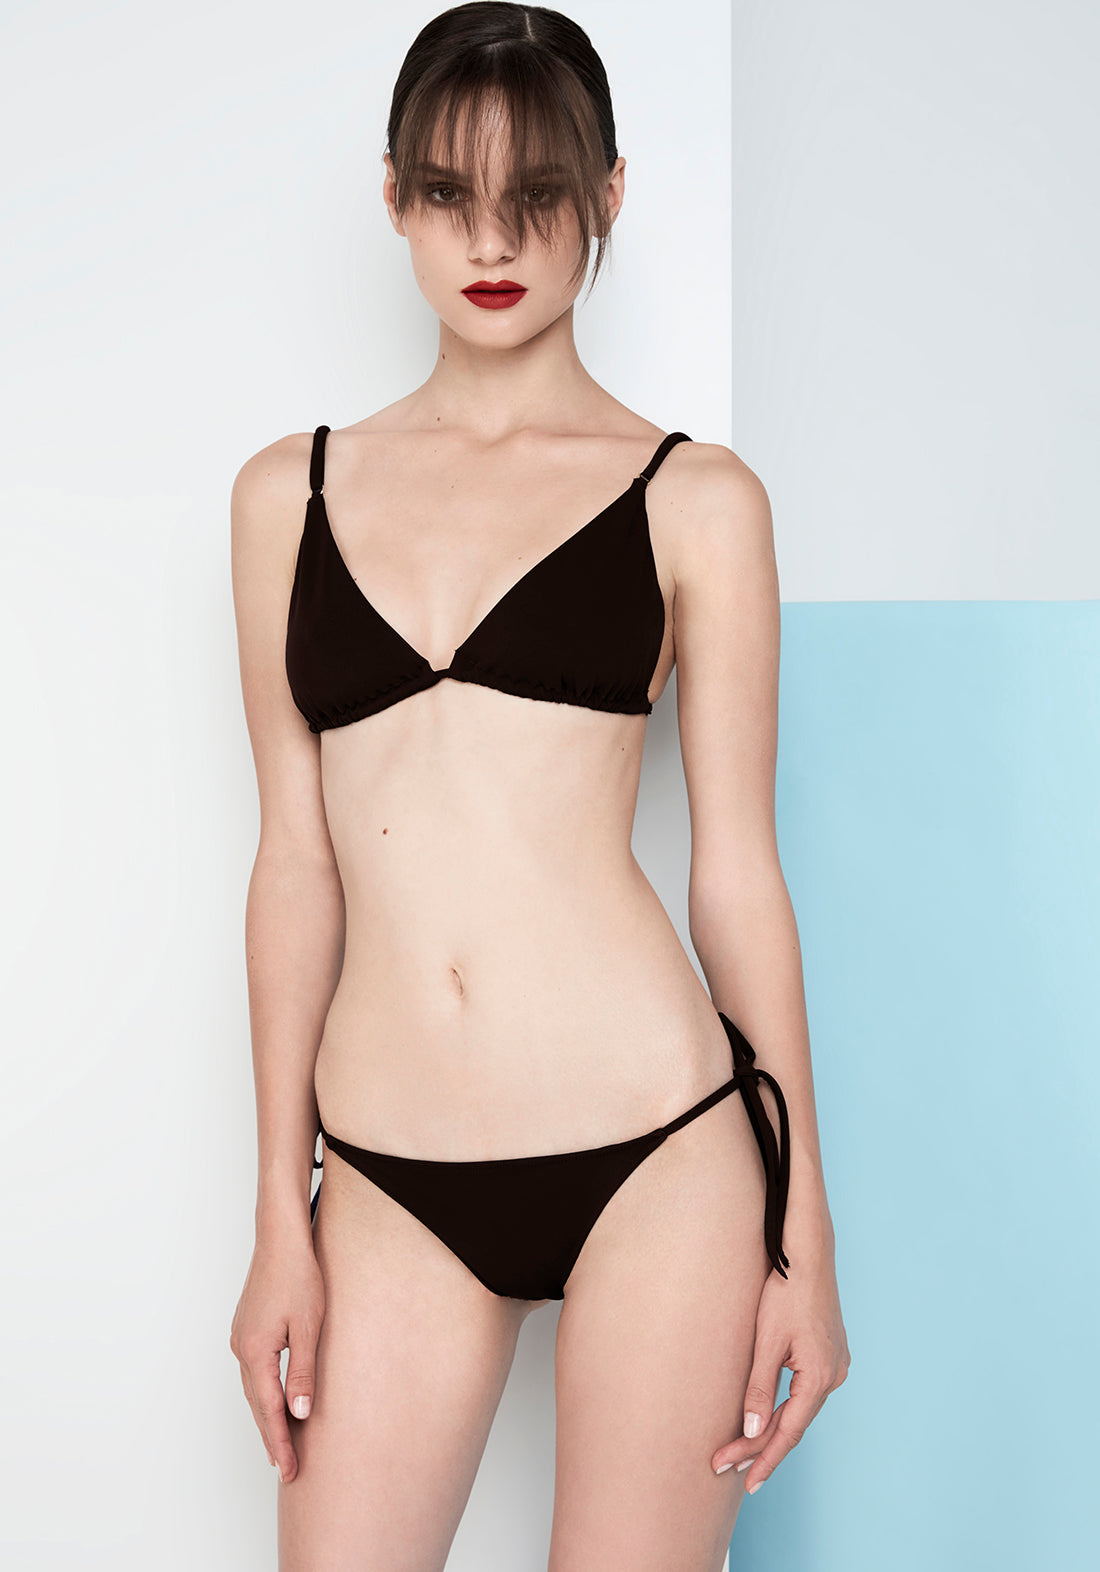 Caprice d'Été Bikini Briefs in Black